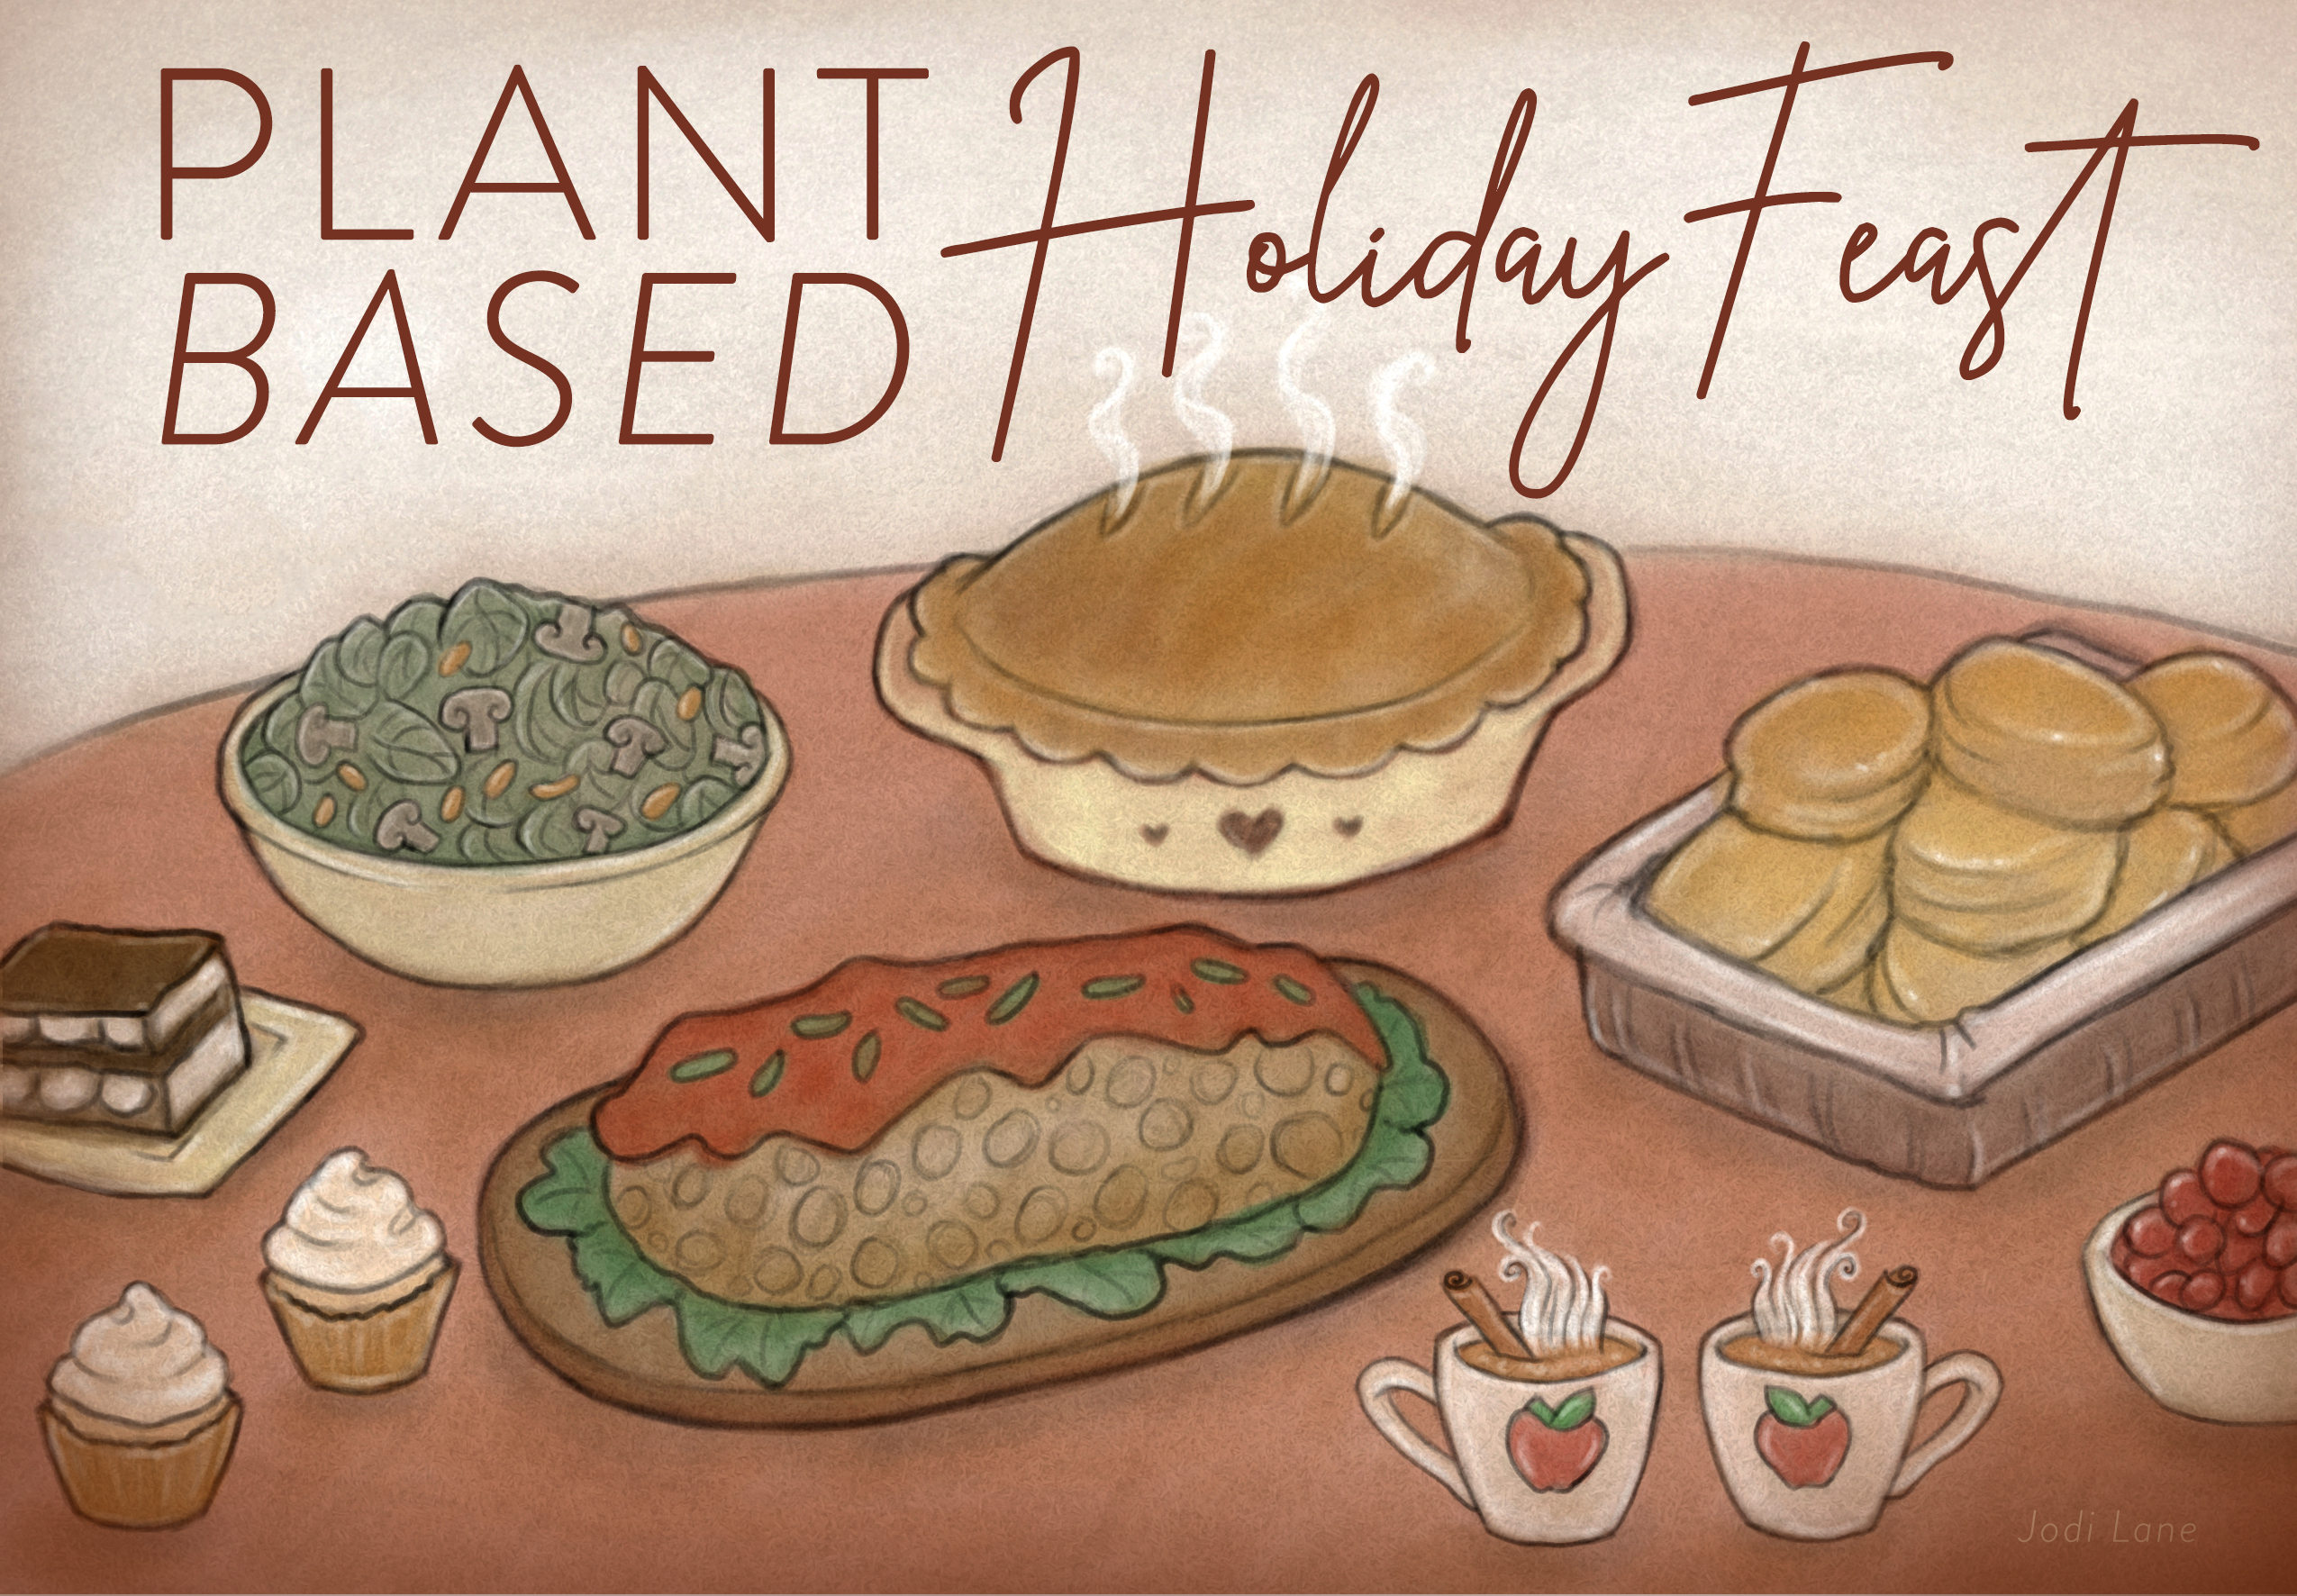 Plant-Based Holiday Feast